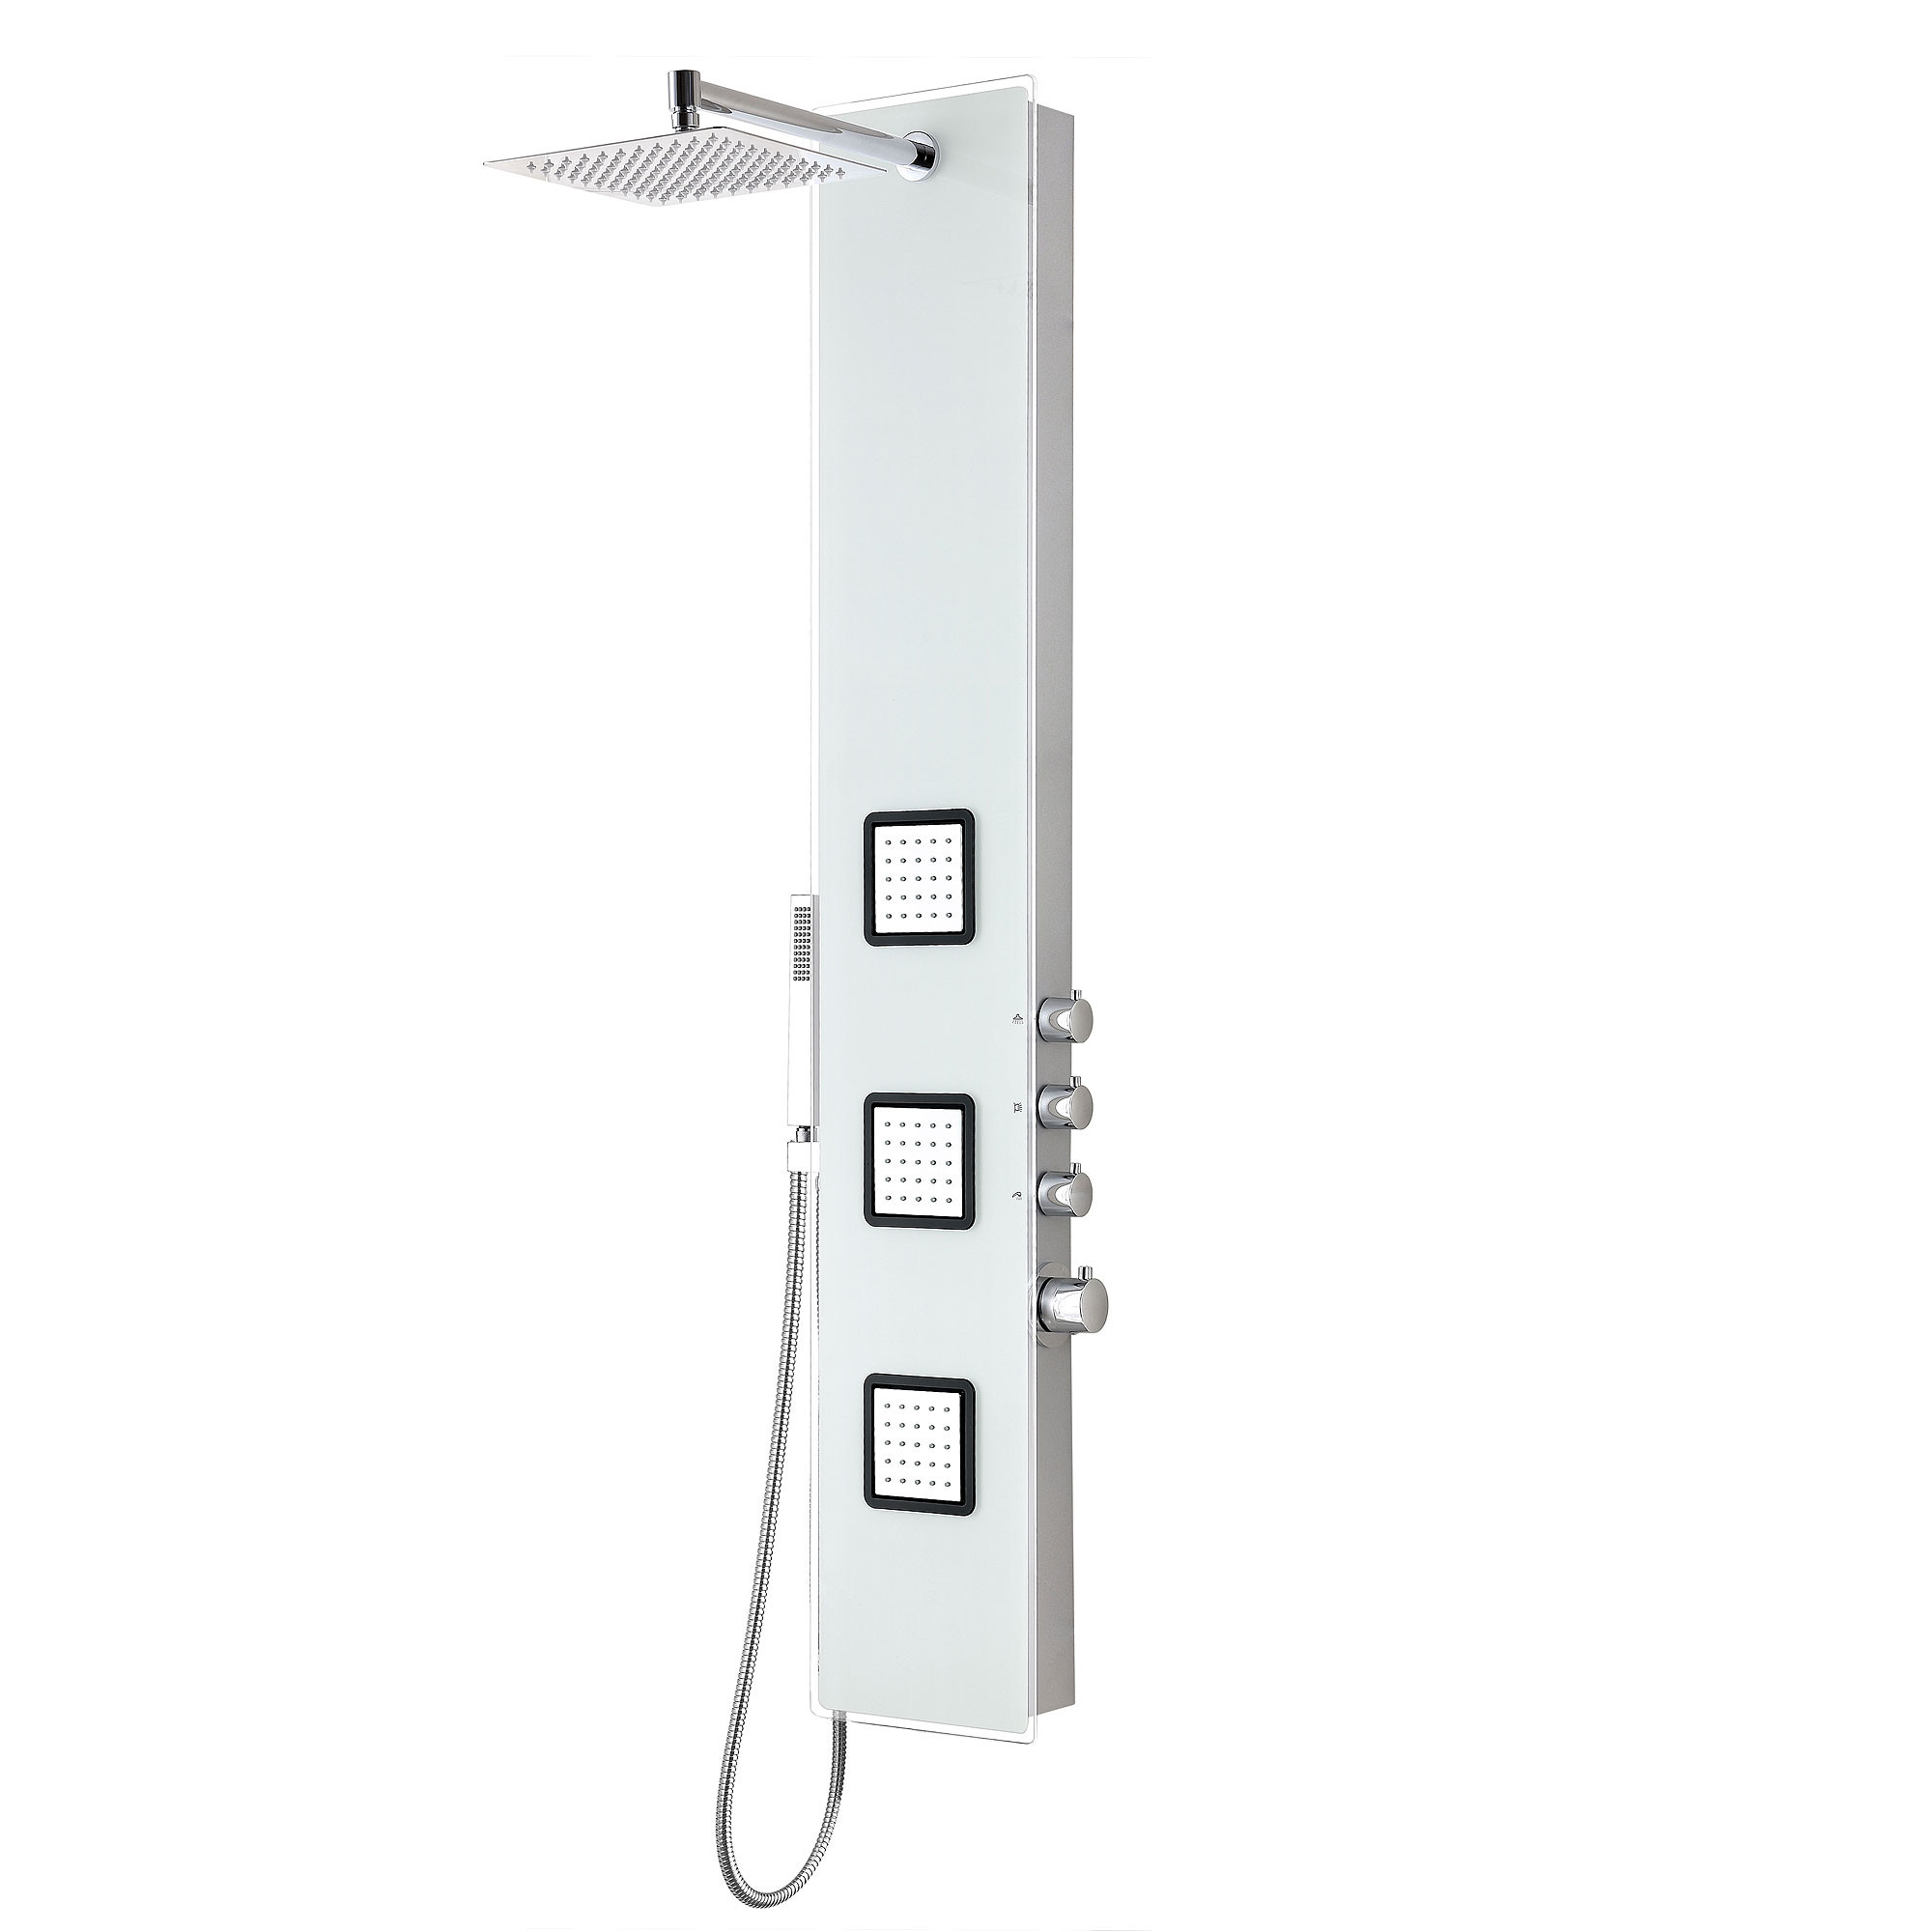 ANZZI SP-AZ032 Leopard Shower Panel With Shower Control Knobs In White